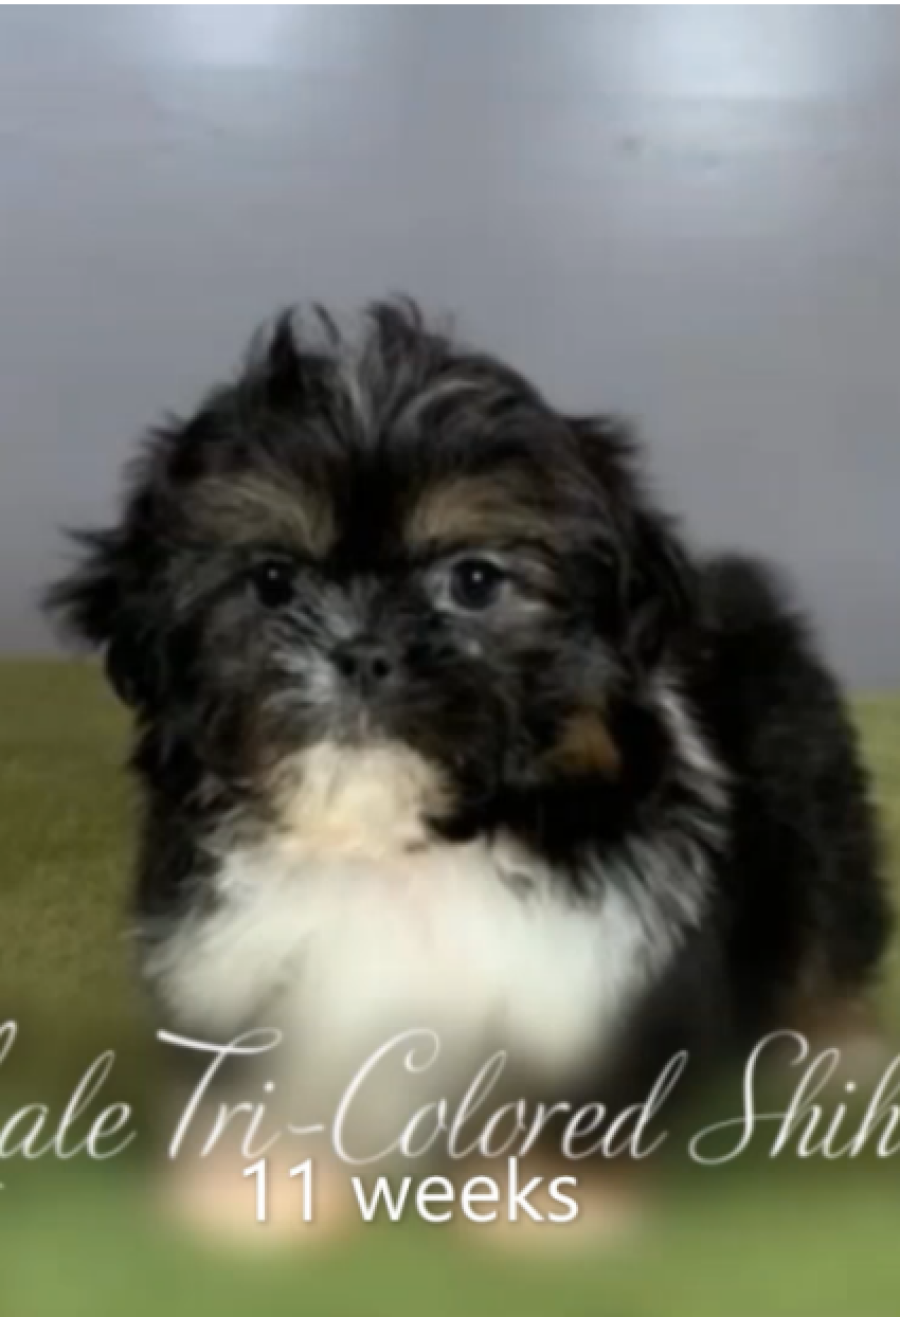 Female Shihtzu 9 weeks old